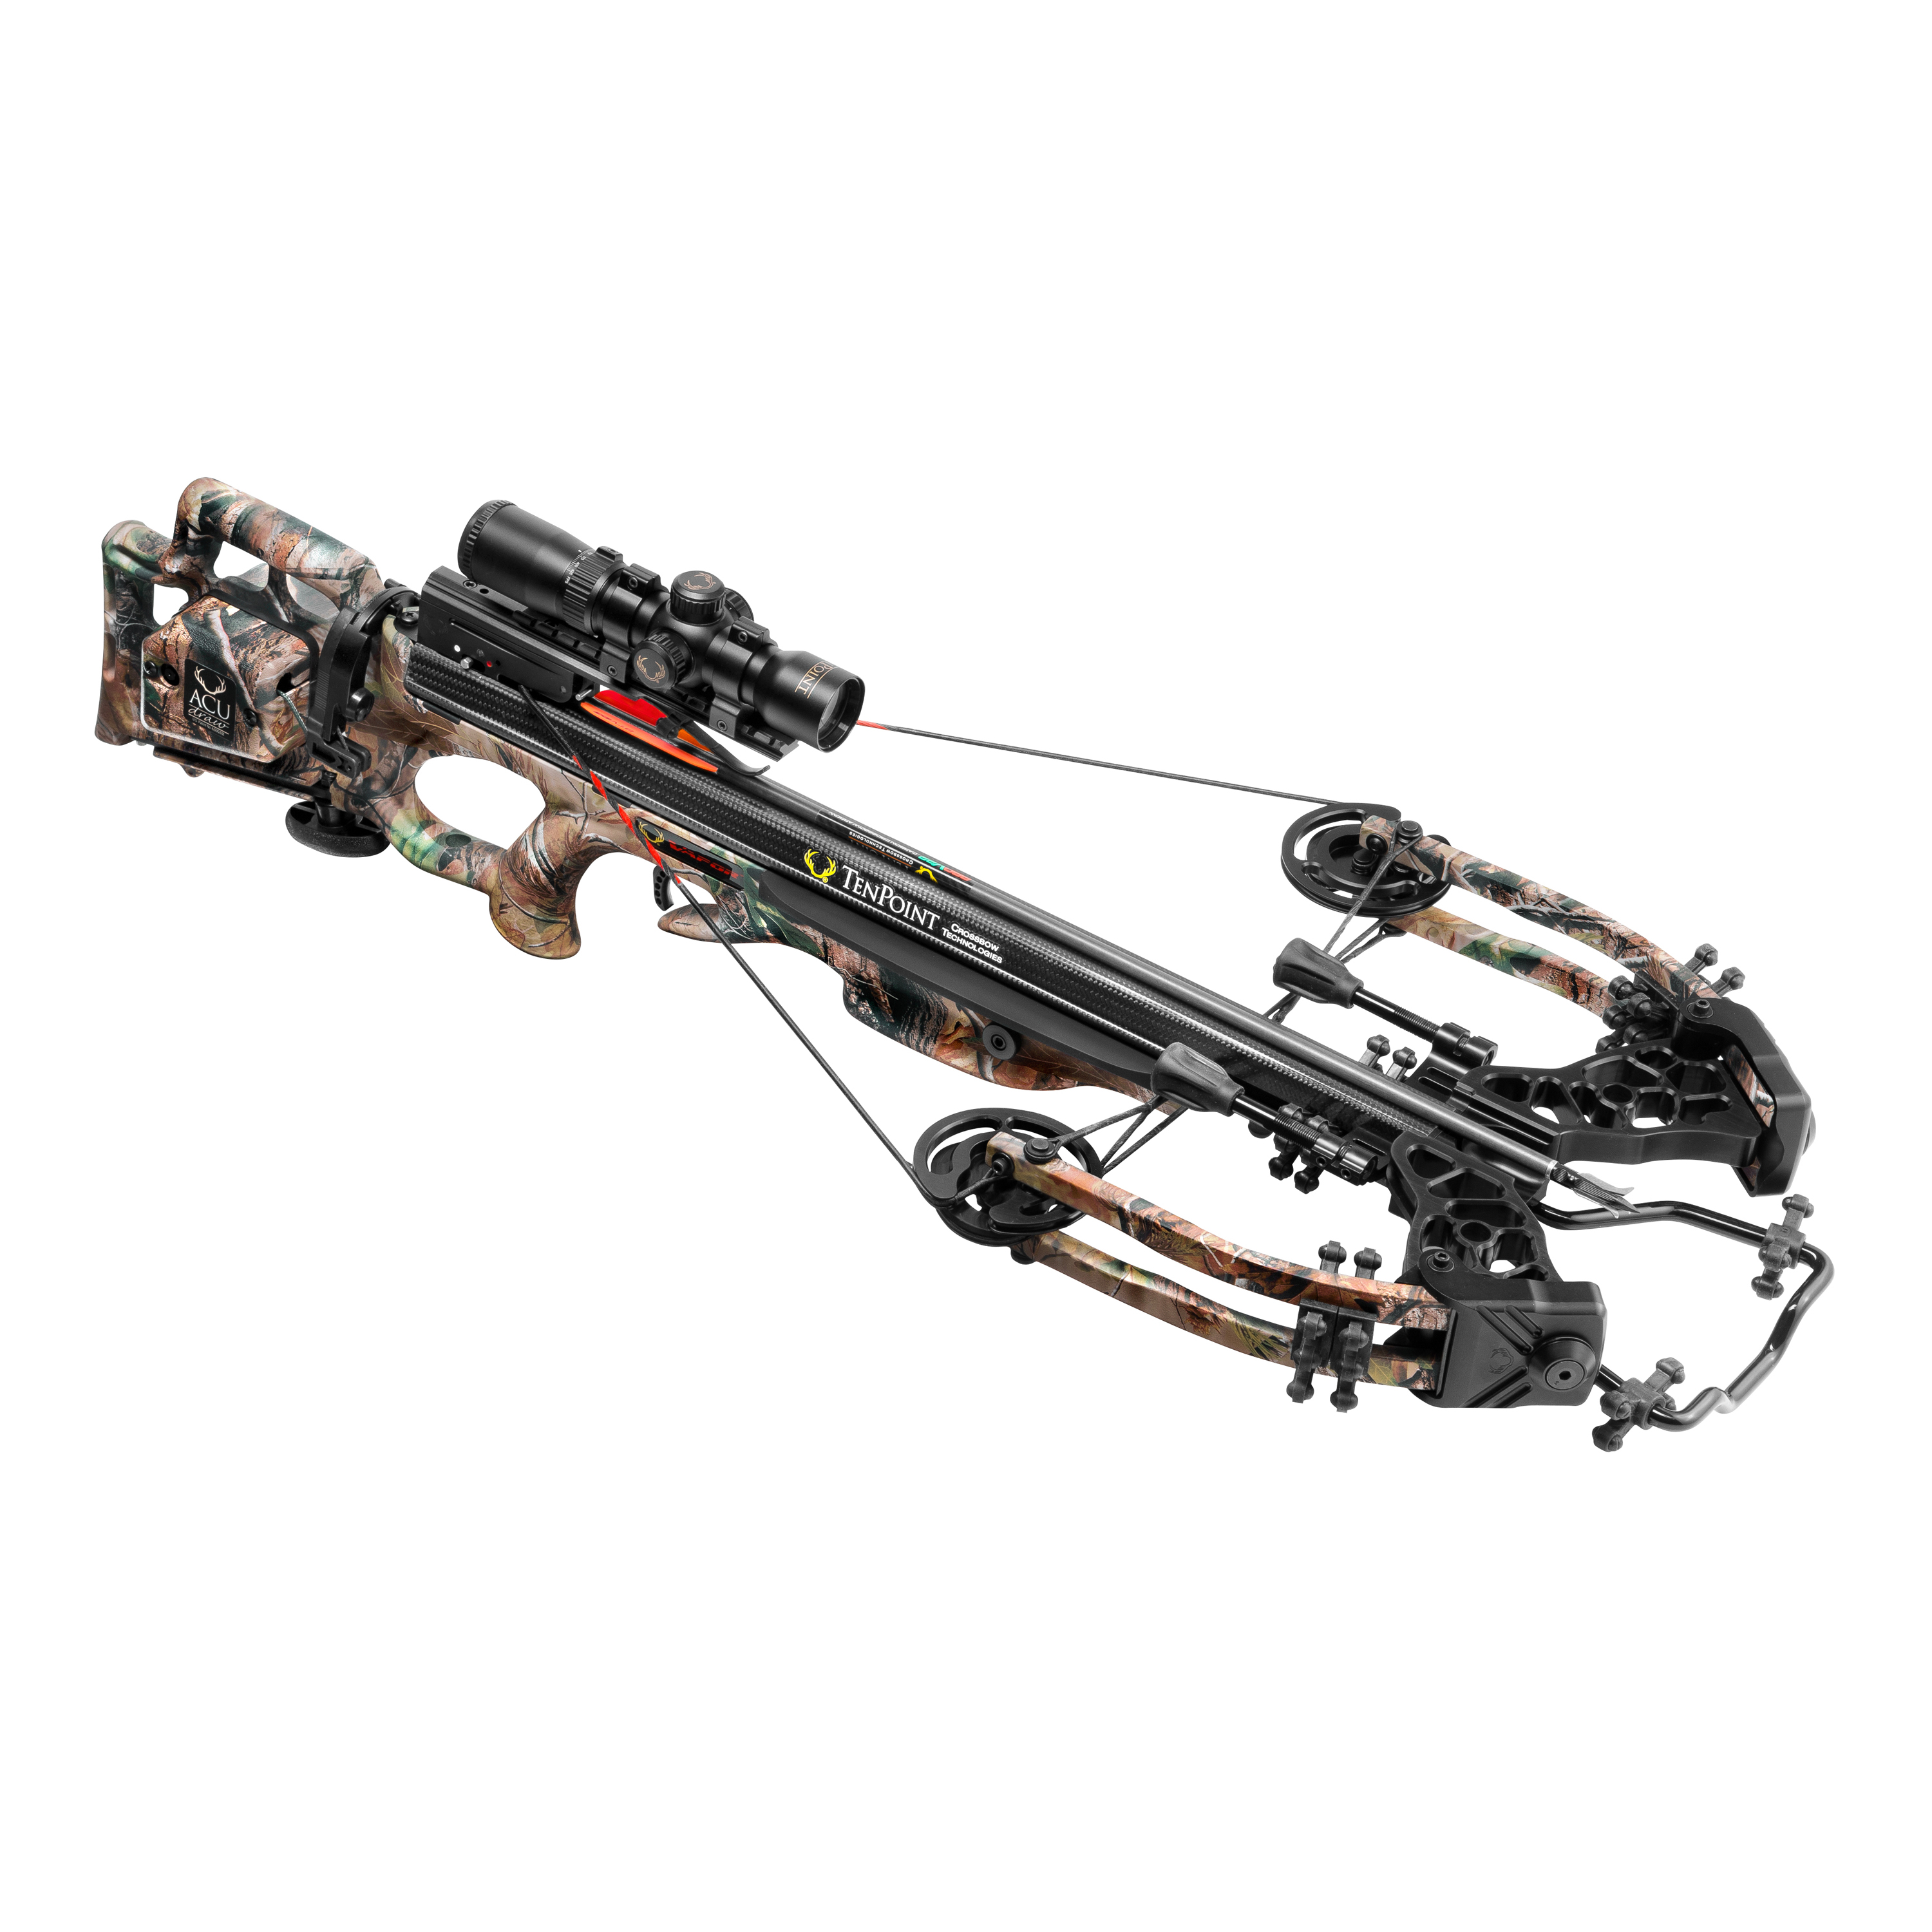 TenPoint Crossbow Technologies Vapor w/Package, Realtree APG HD Camo CB13004-7412